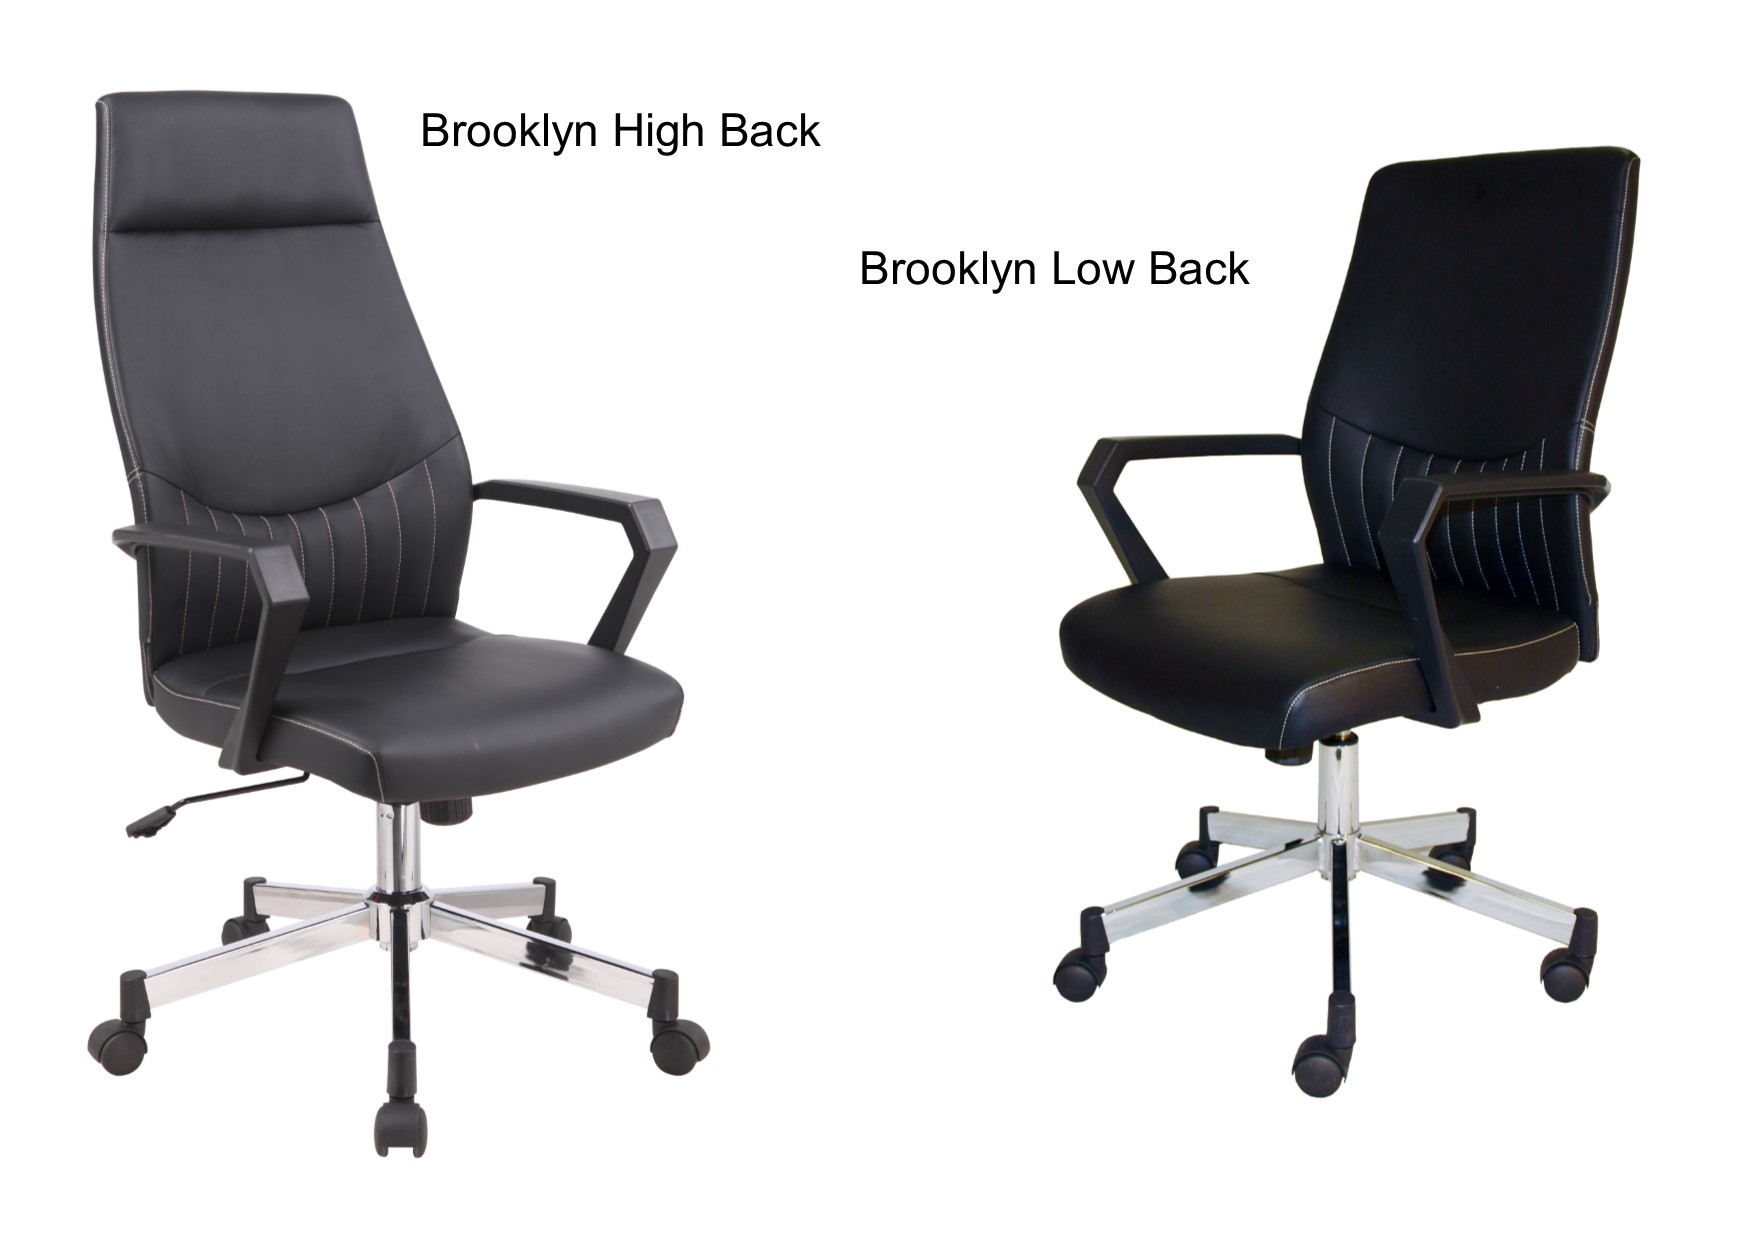 Swell Details About Brooklyn Black Modern Faux Leather Office Chair High Or Low Back Creativecarmelina Interior Chair Design Creativecarmelinacom